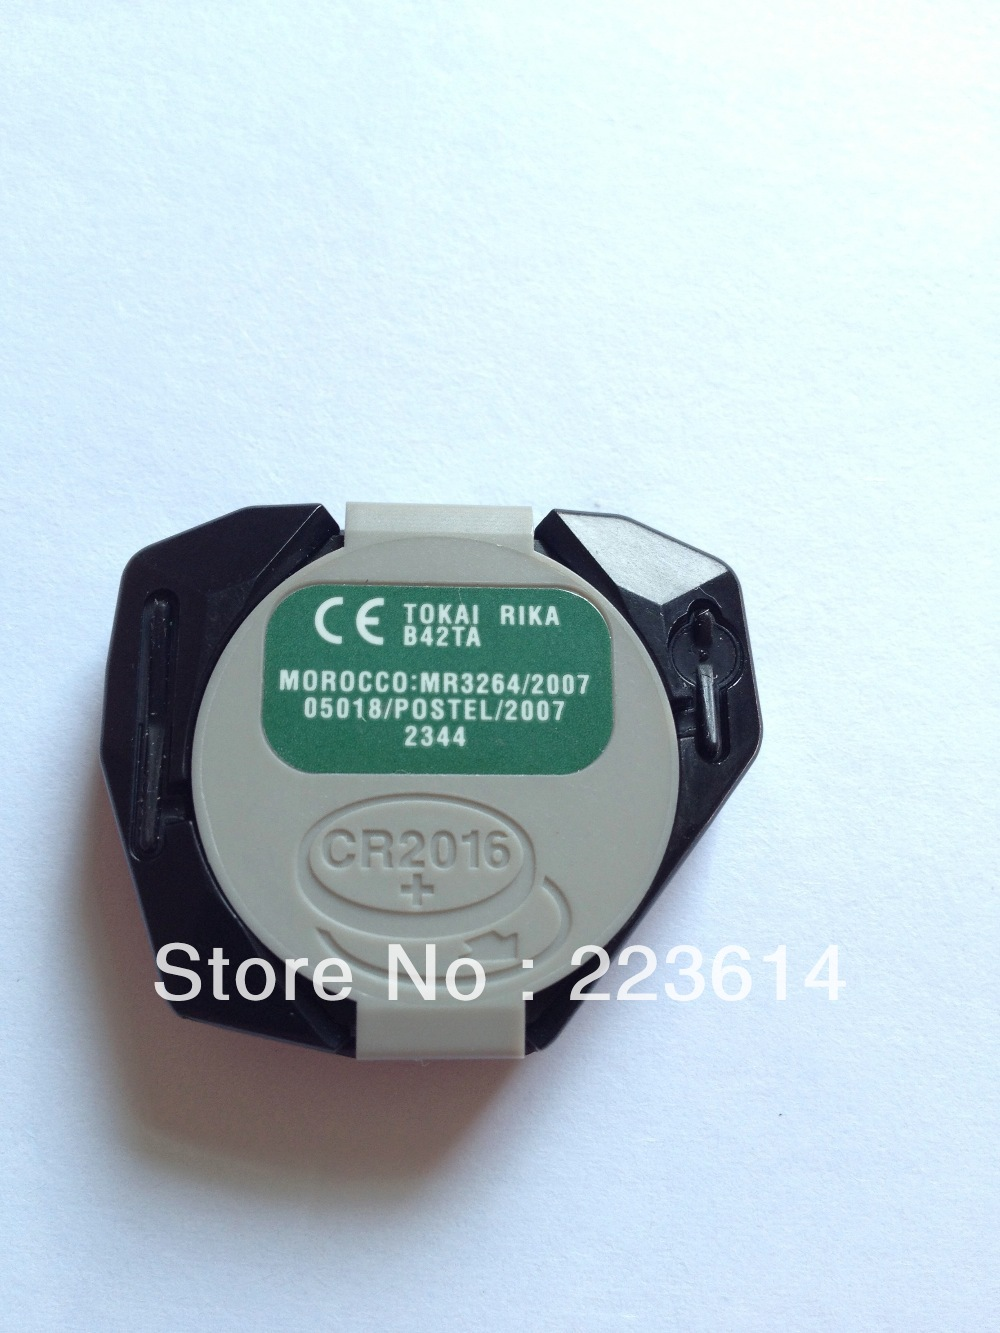 toyota original Tokai Rika Remote set B42TA 433mhz 3 button can be used in HK/TW /THAILAND/BRAZIL<br><br>Aliexpress